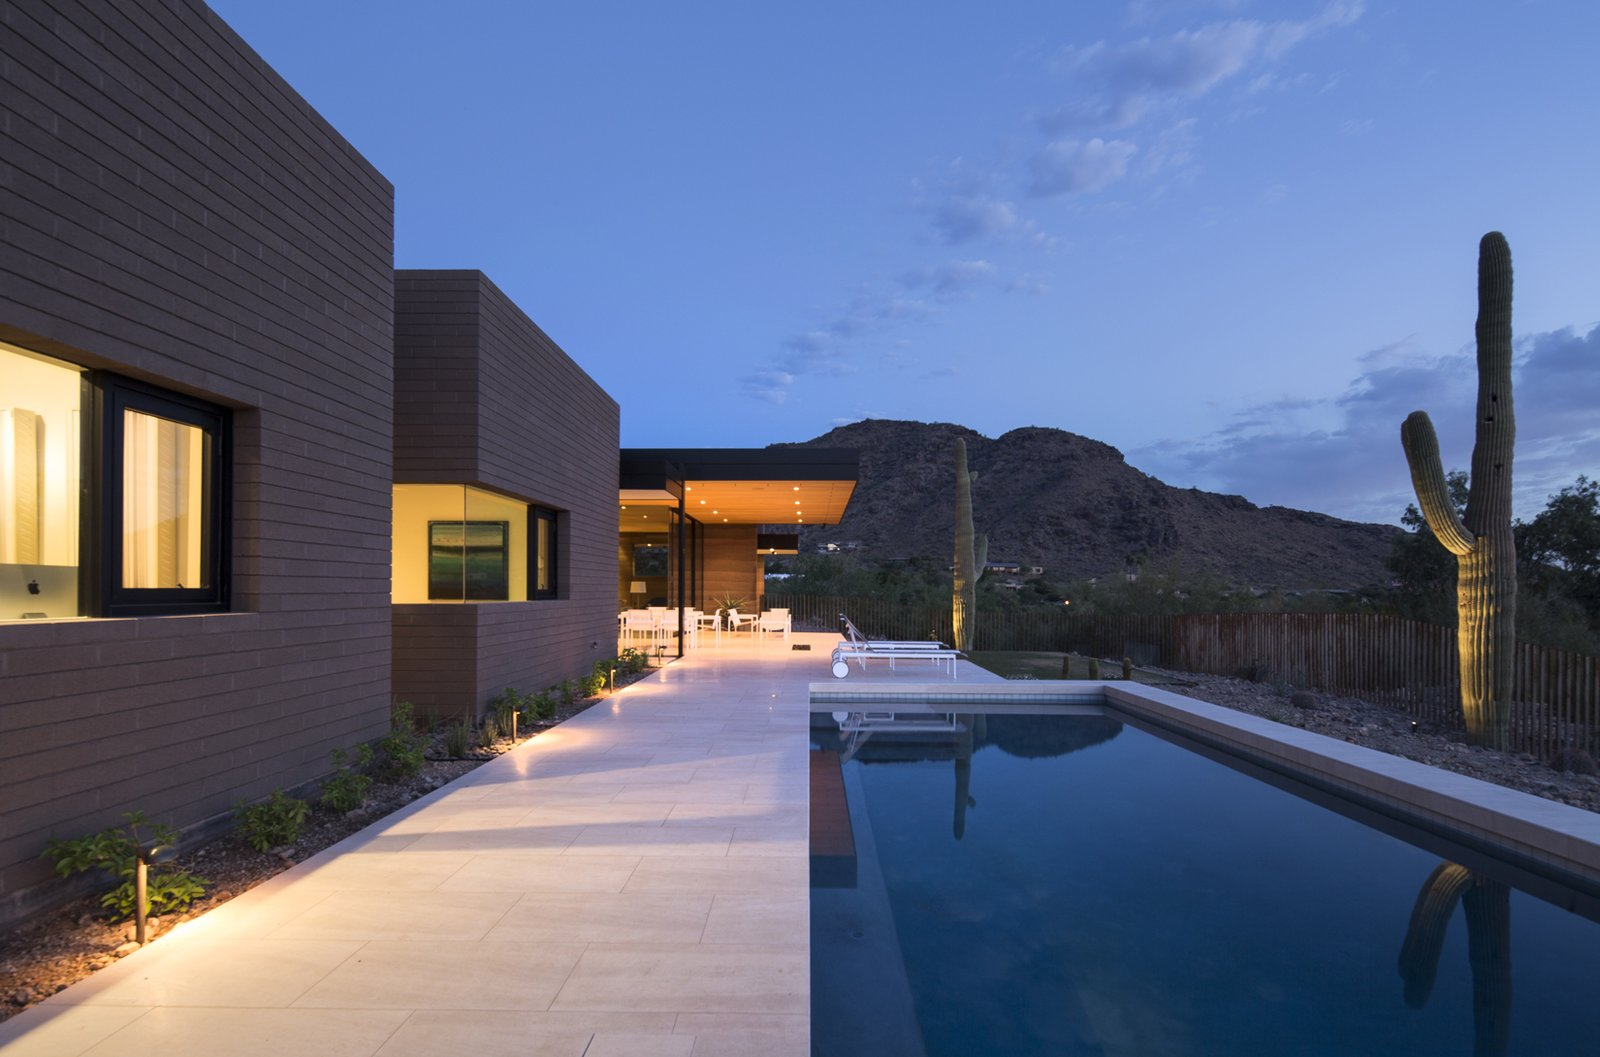 Outdoor, Back Yard, Trees, Concrete, Small, Grass, Hardscapes, Shrubs, Large, Vertical, Metal, Landscape, and Stone  Outdoor Metal Stone Back Yard Photos from Rammed Earth Modern